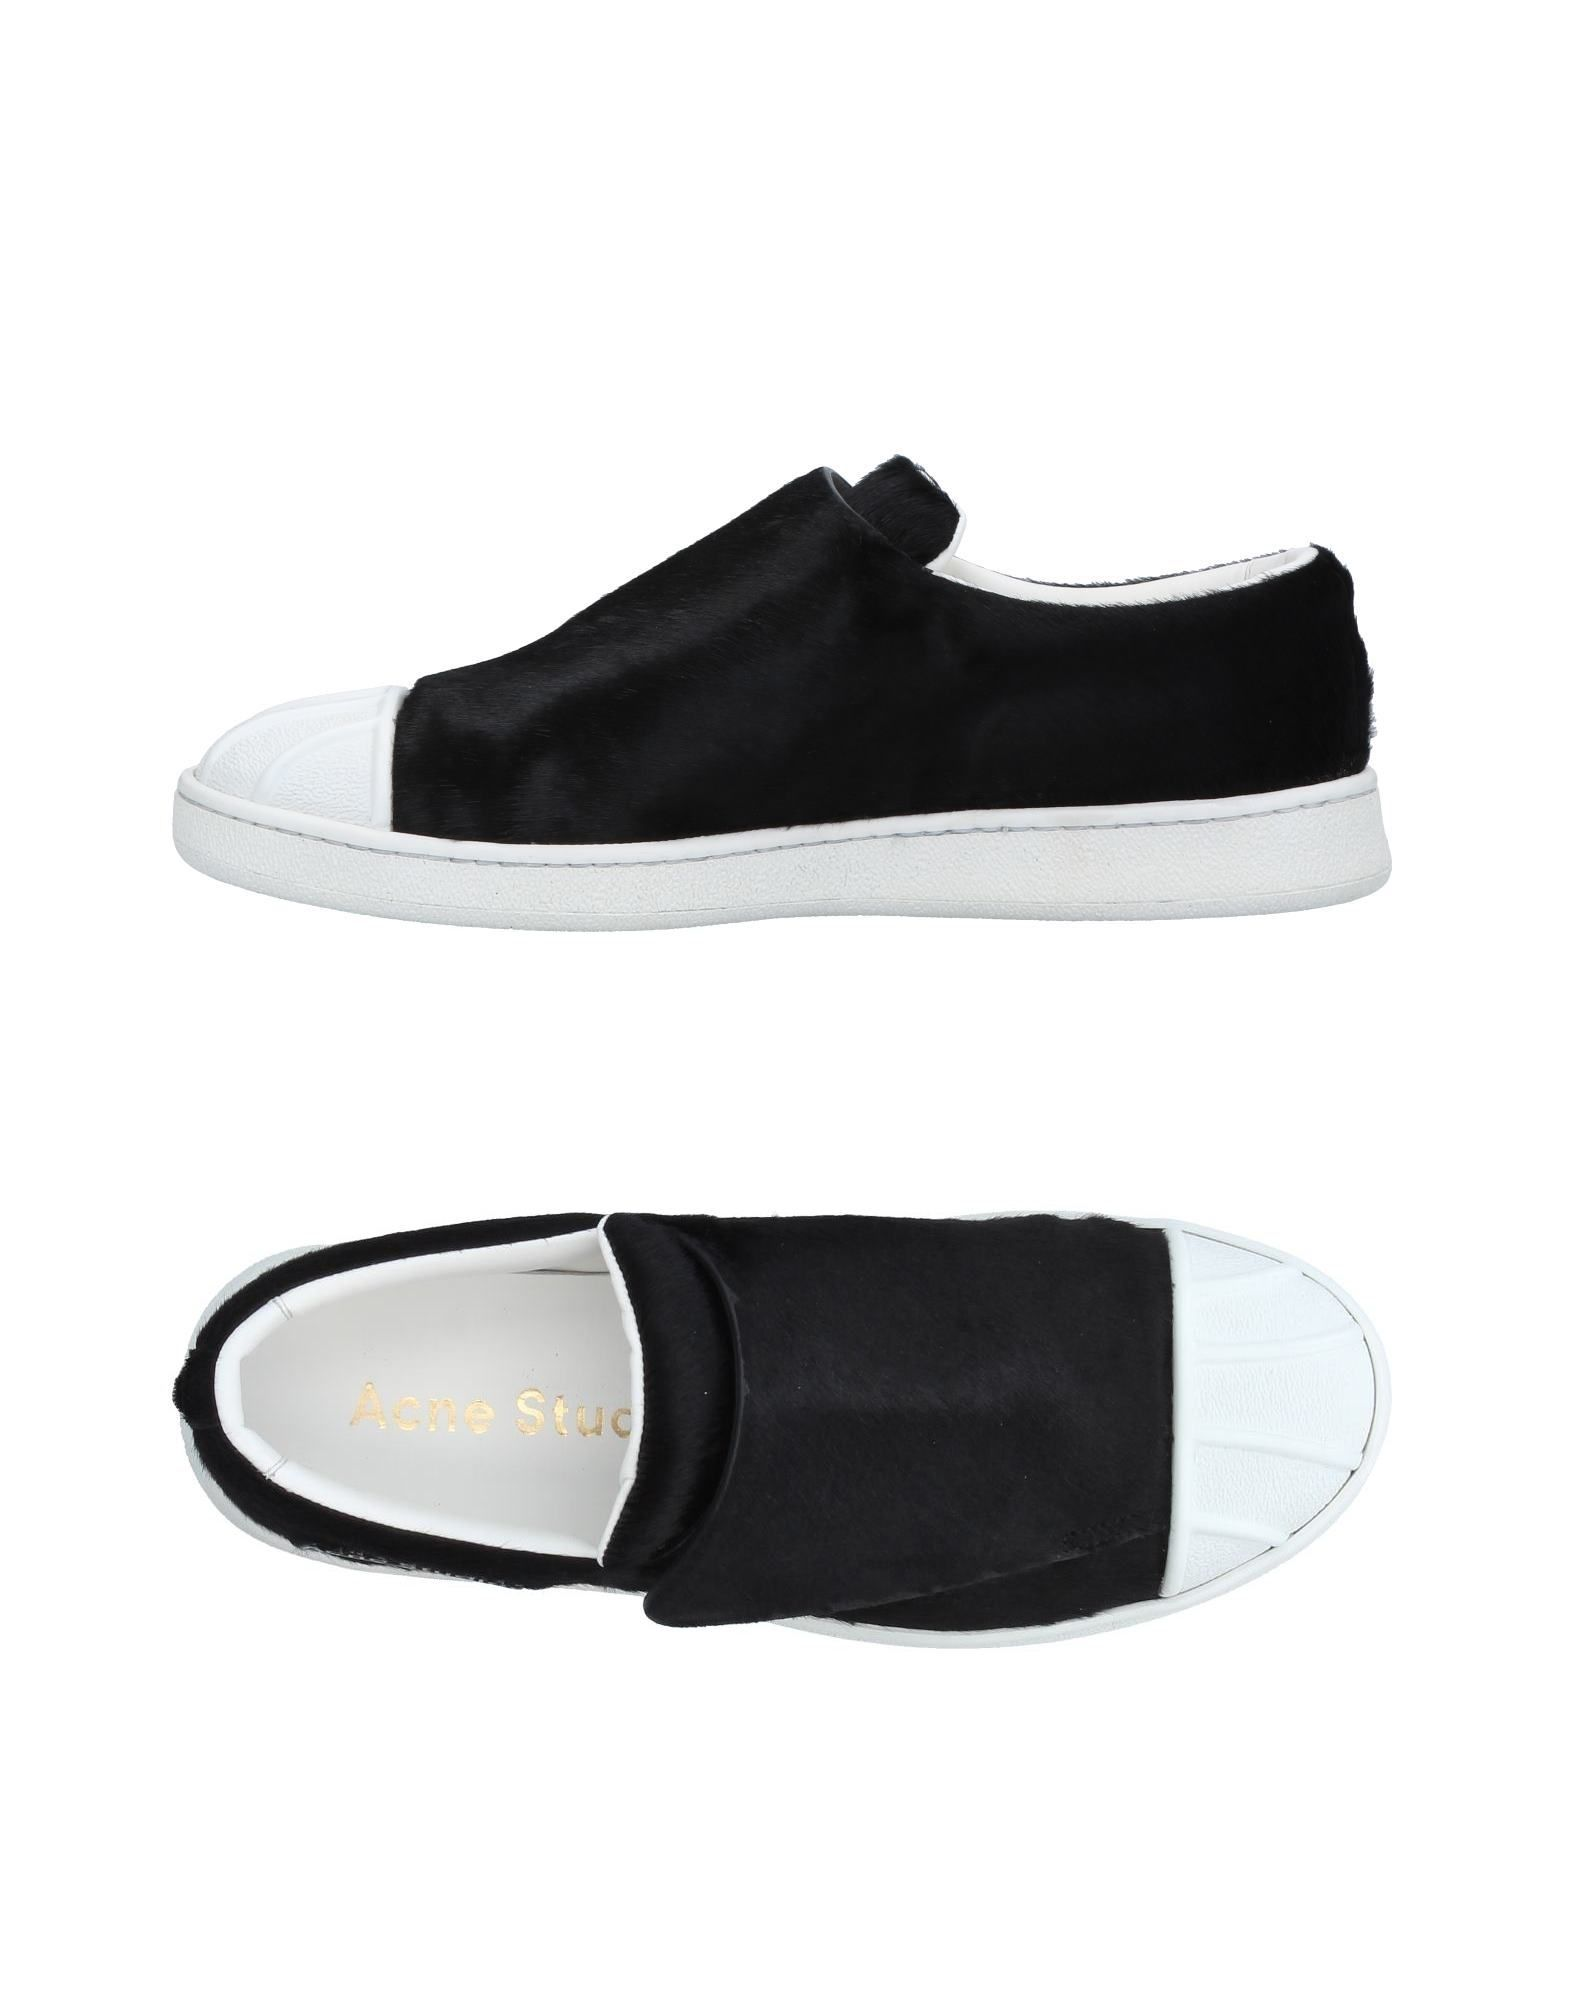 Sneakers Acne Studios Donna - Acquista online su